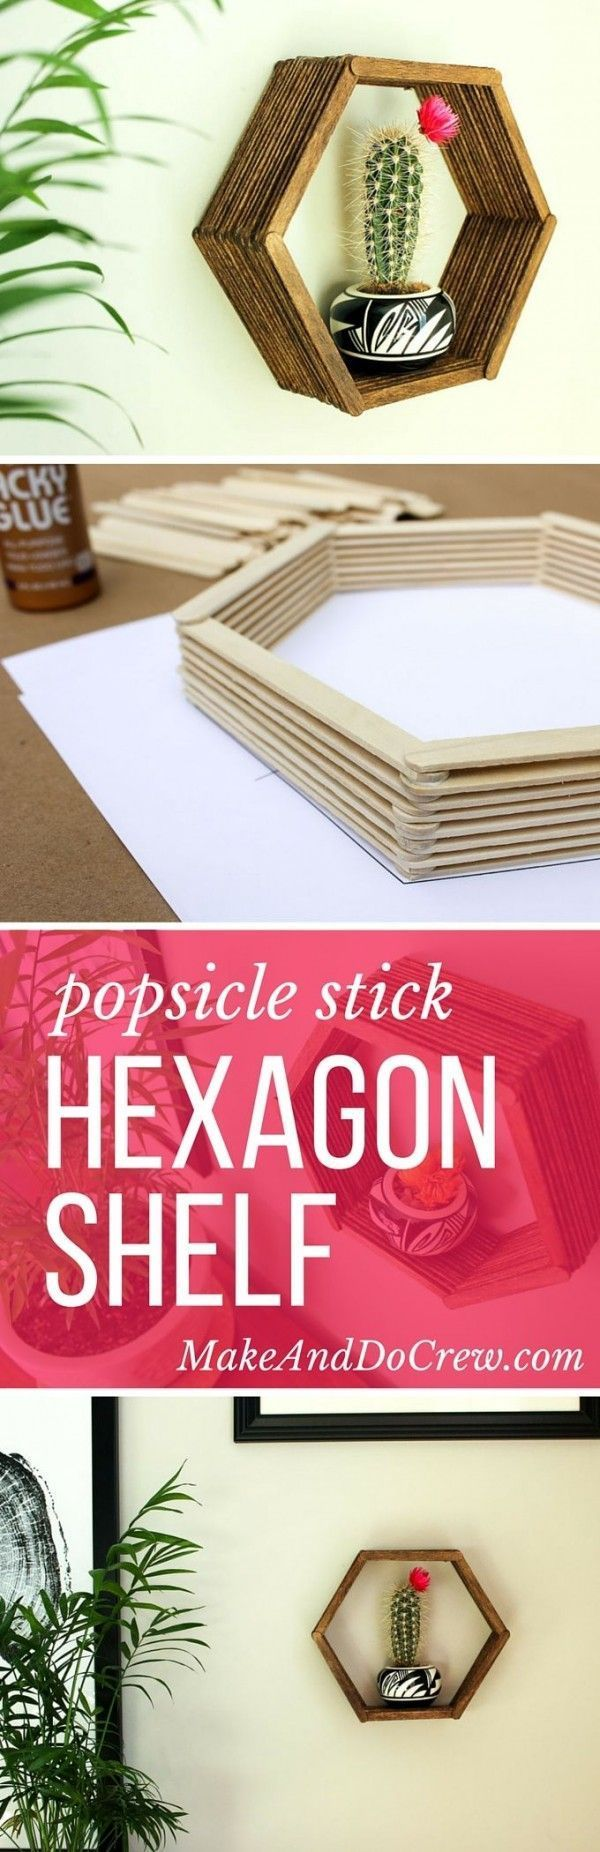 best weekend diy projects images on pinterest home ideas cool